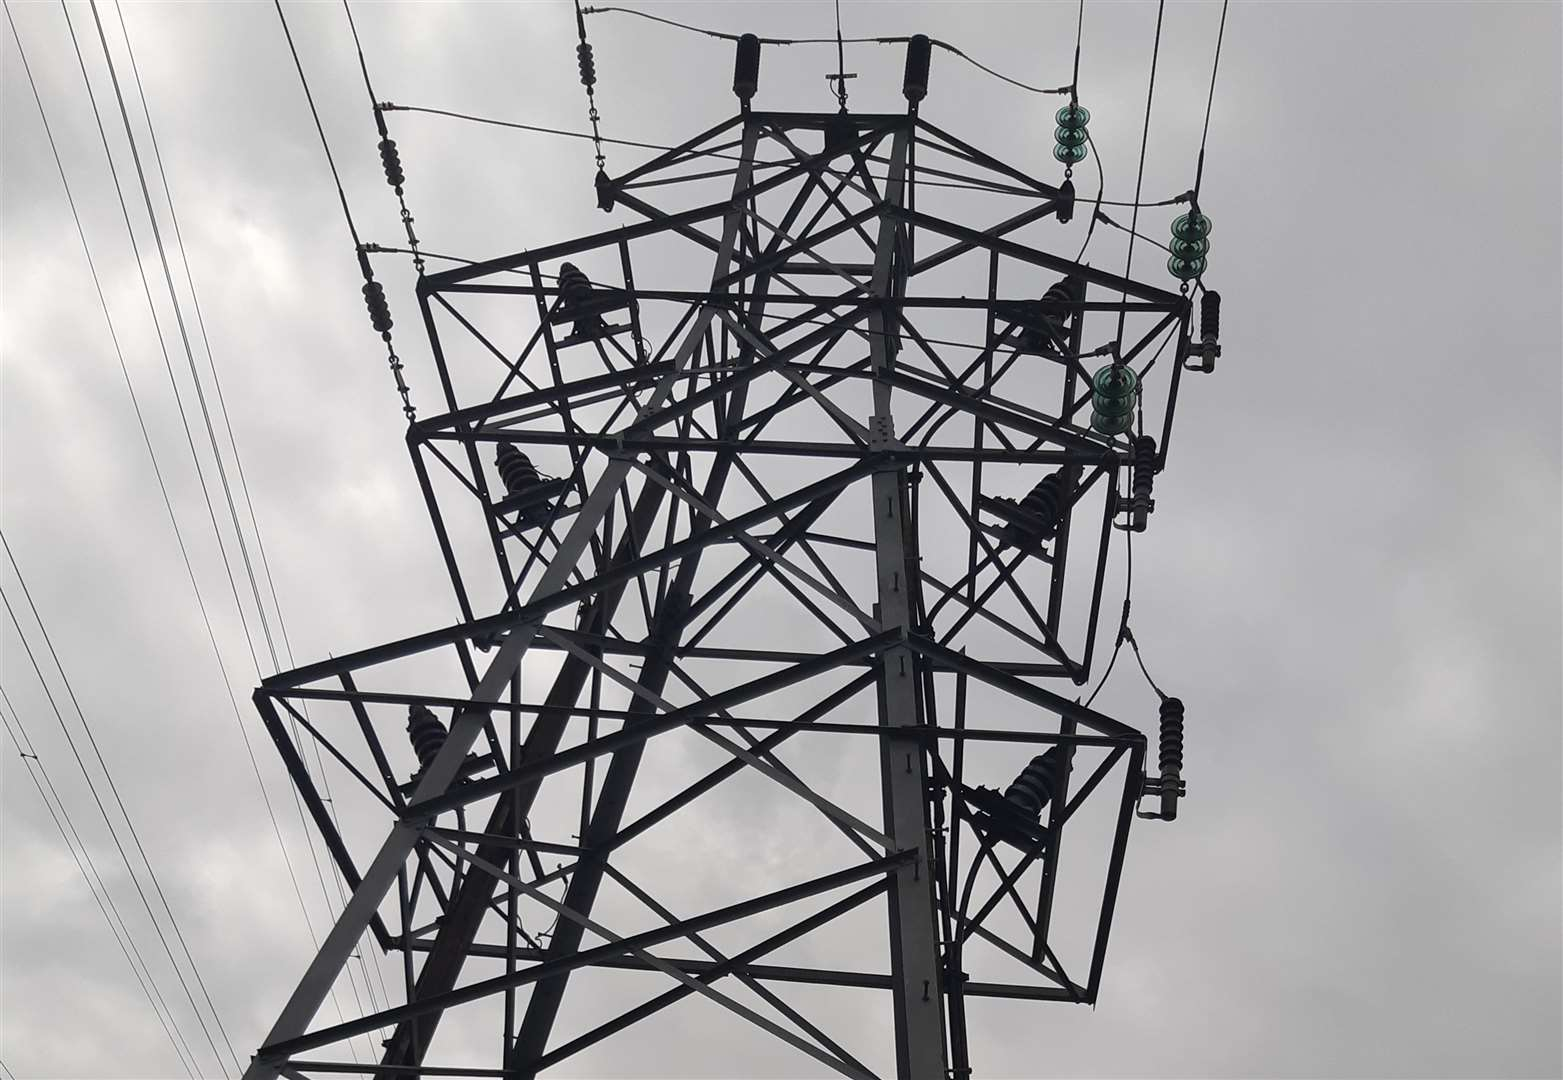 Repairs go on after power cut in town